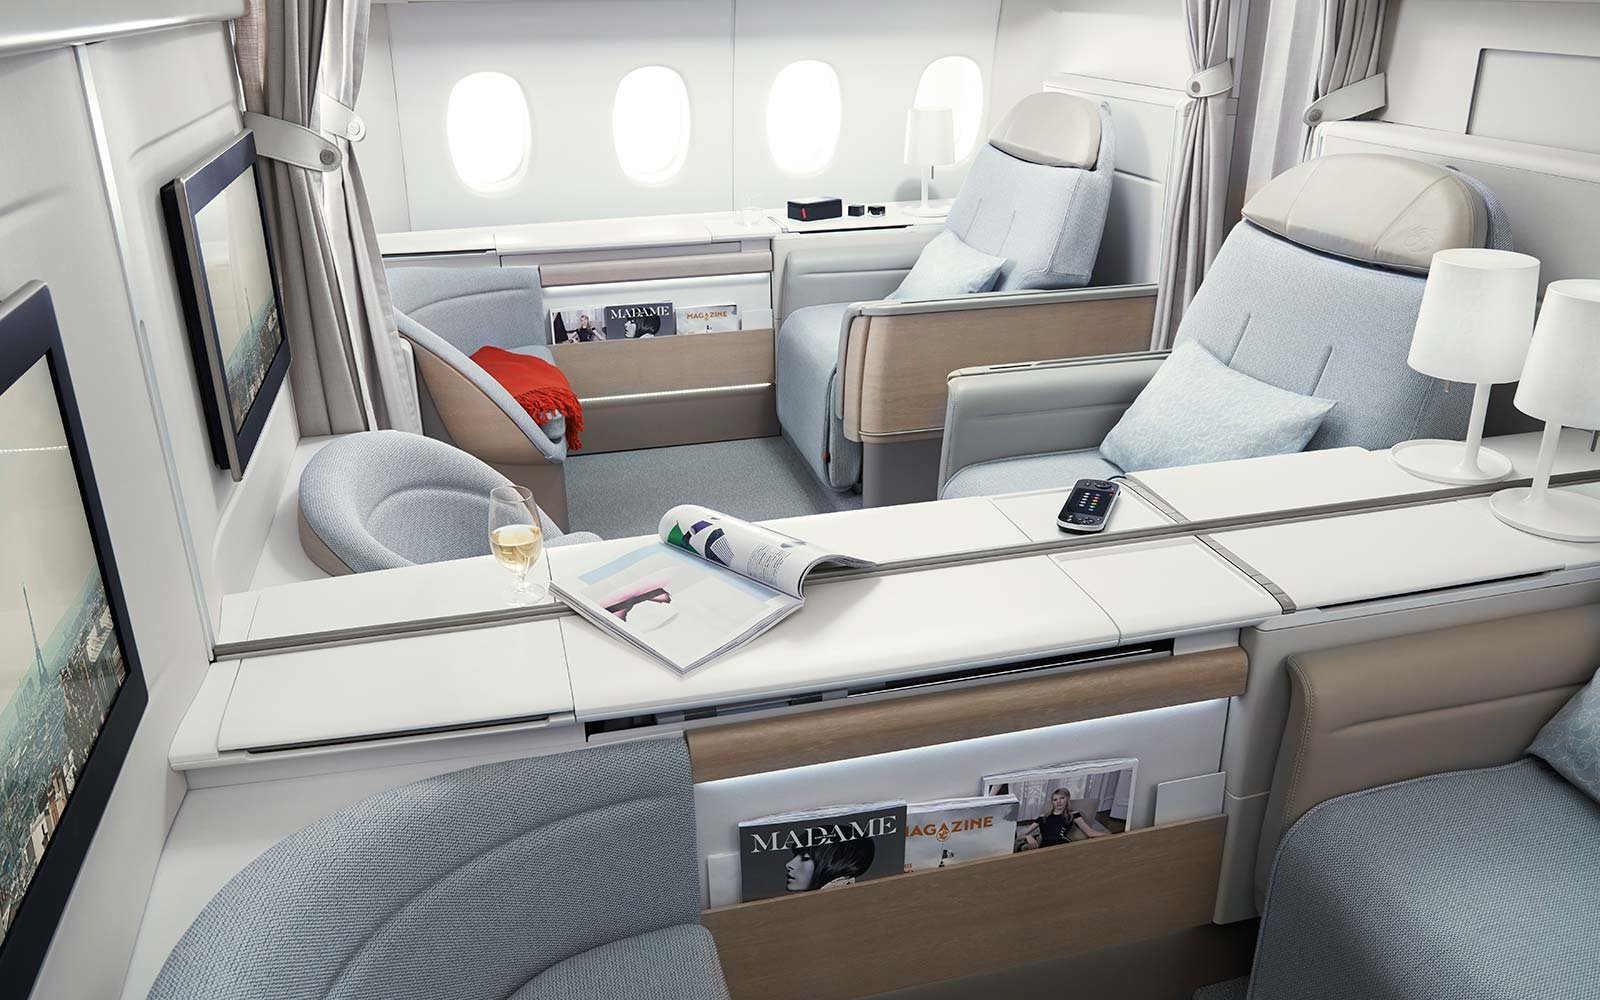 Air France La Premiere First Class Cabin Airplane